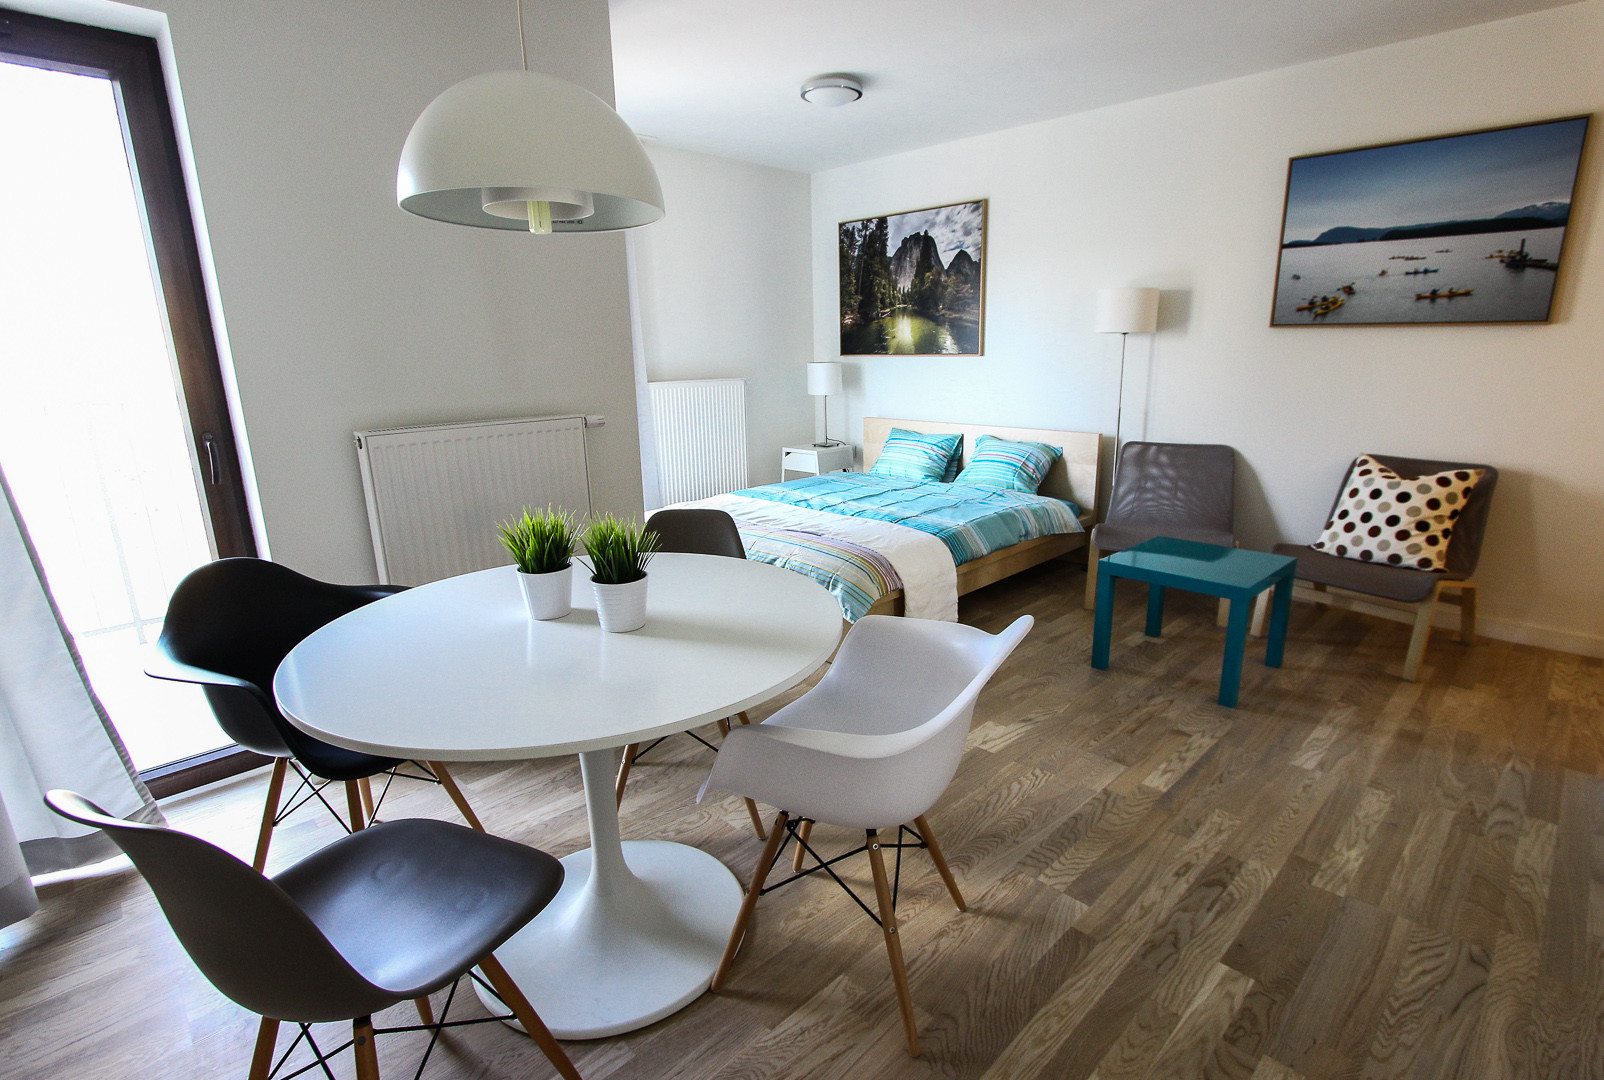 Small apartments with an area of 28-36 m2 in Krakow